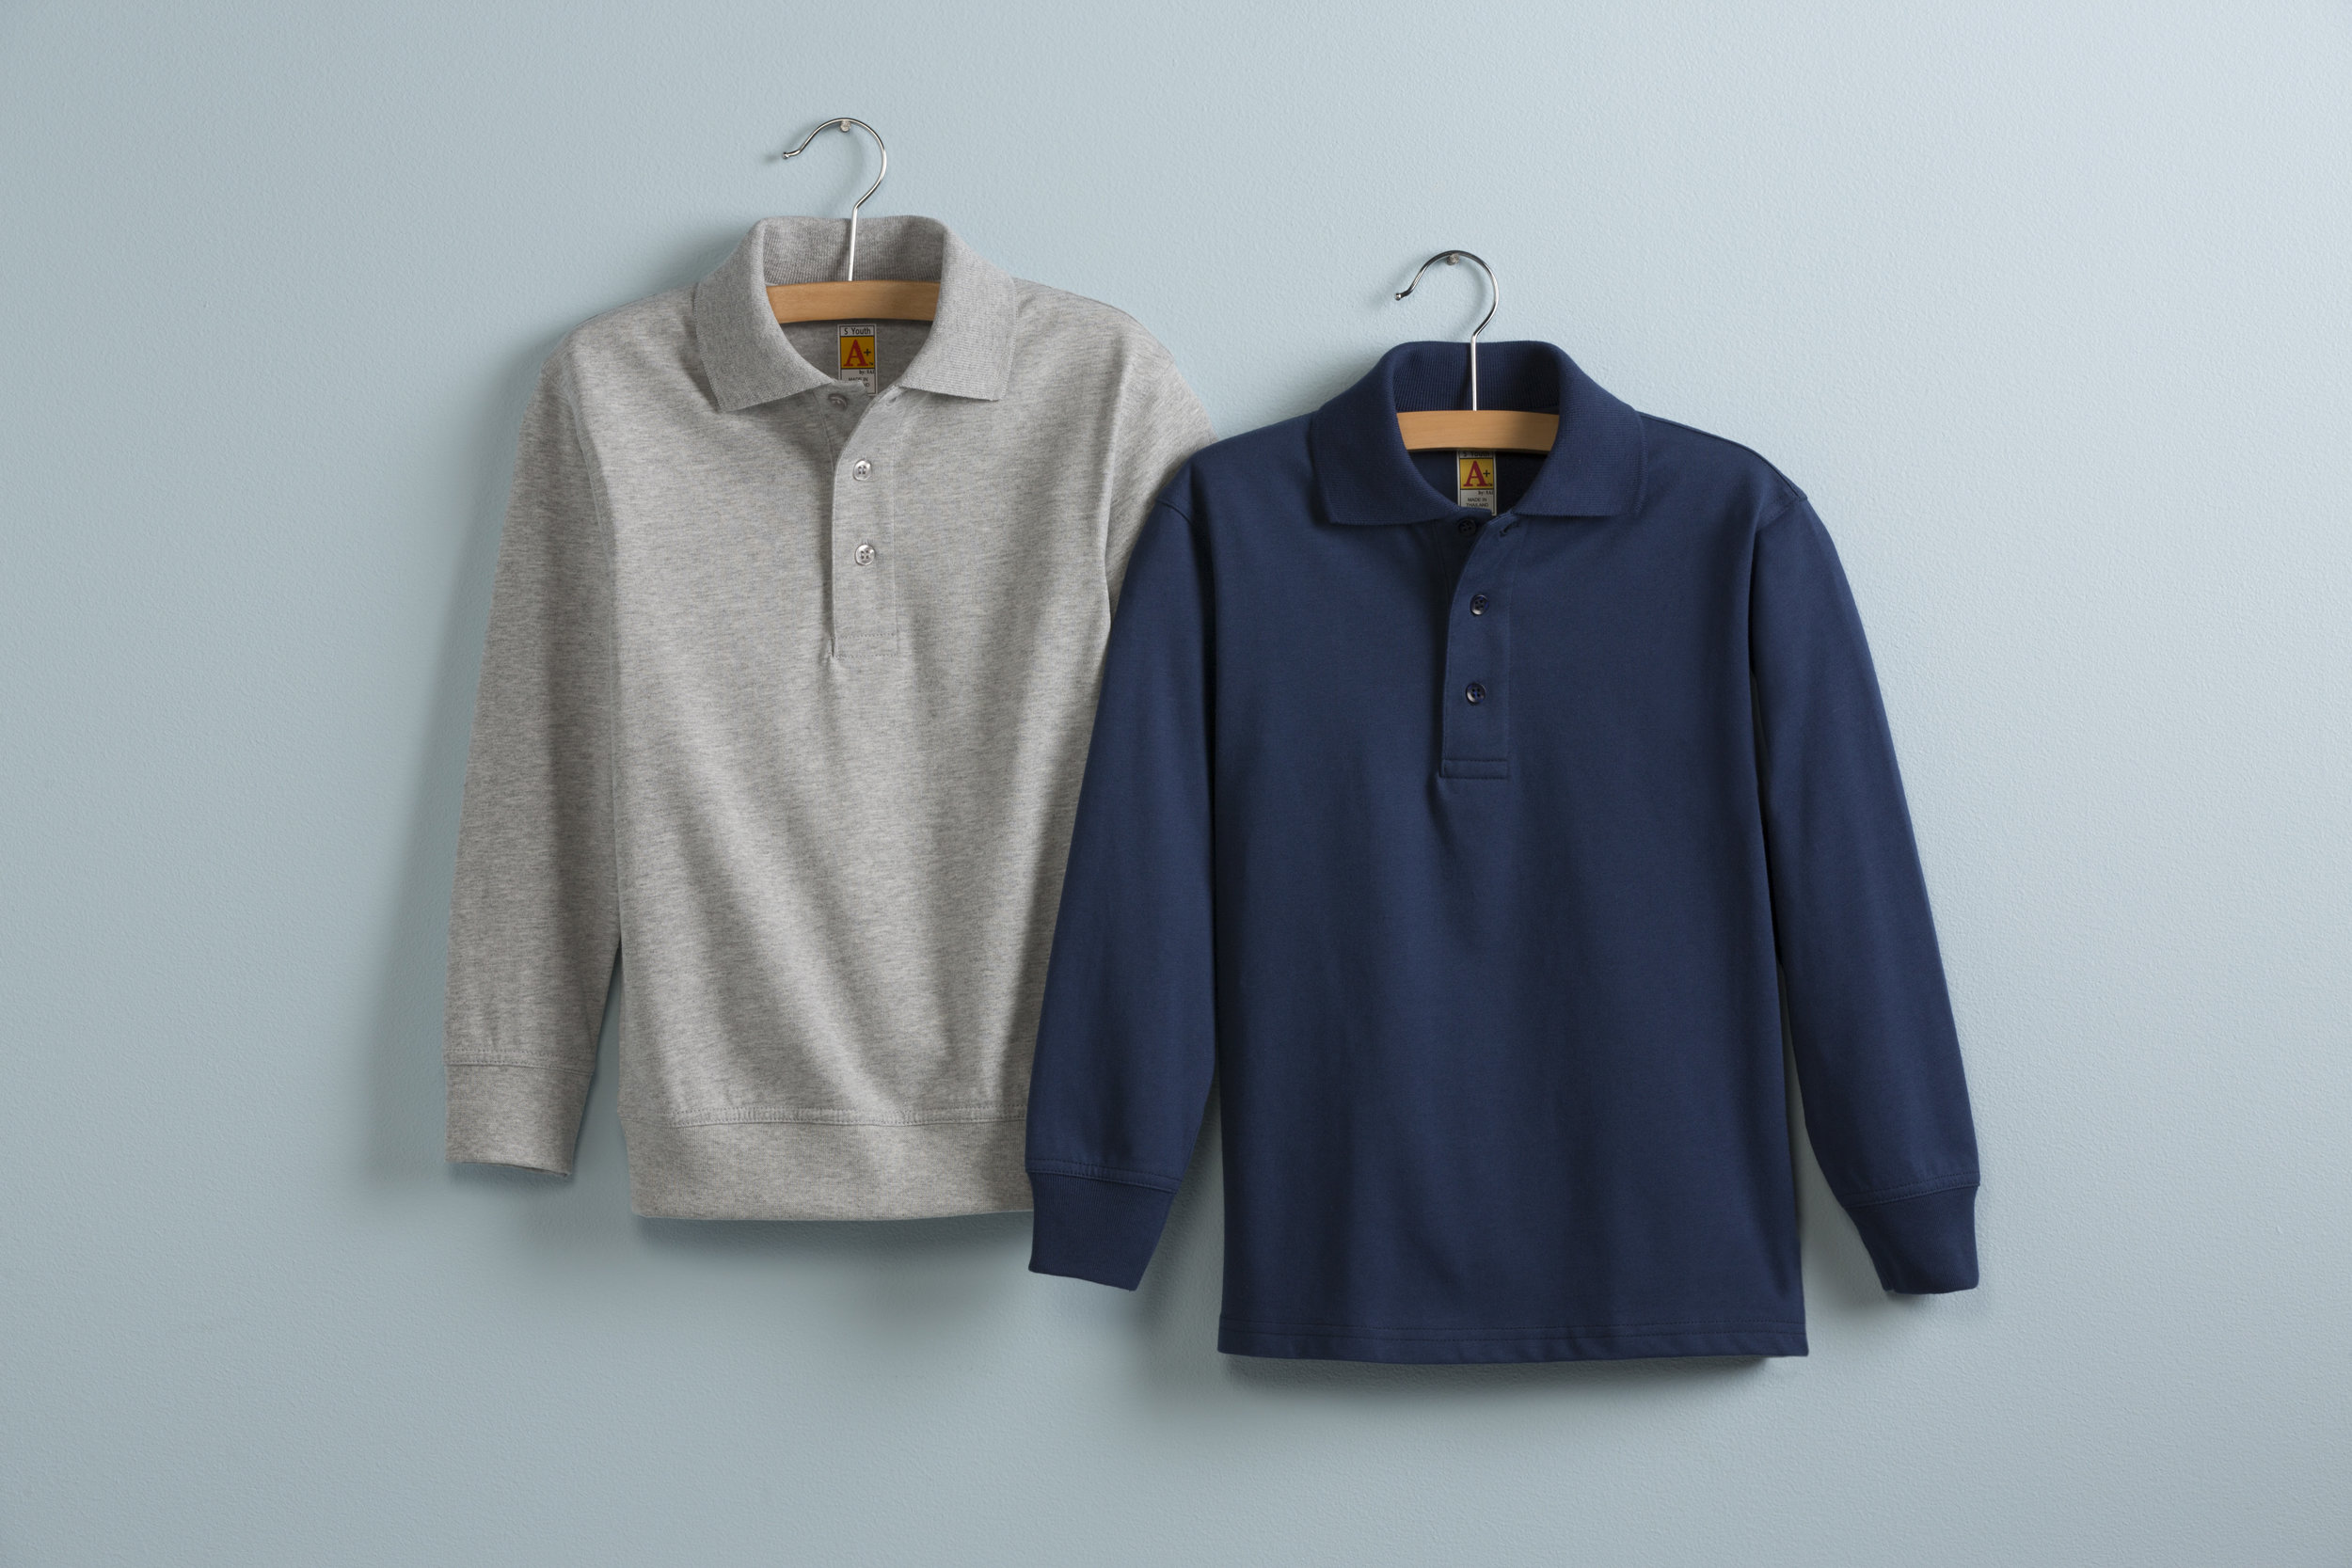 THE STAFF SHOP - POLO AND OXFORD